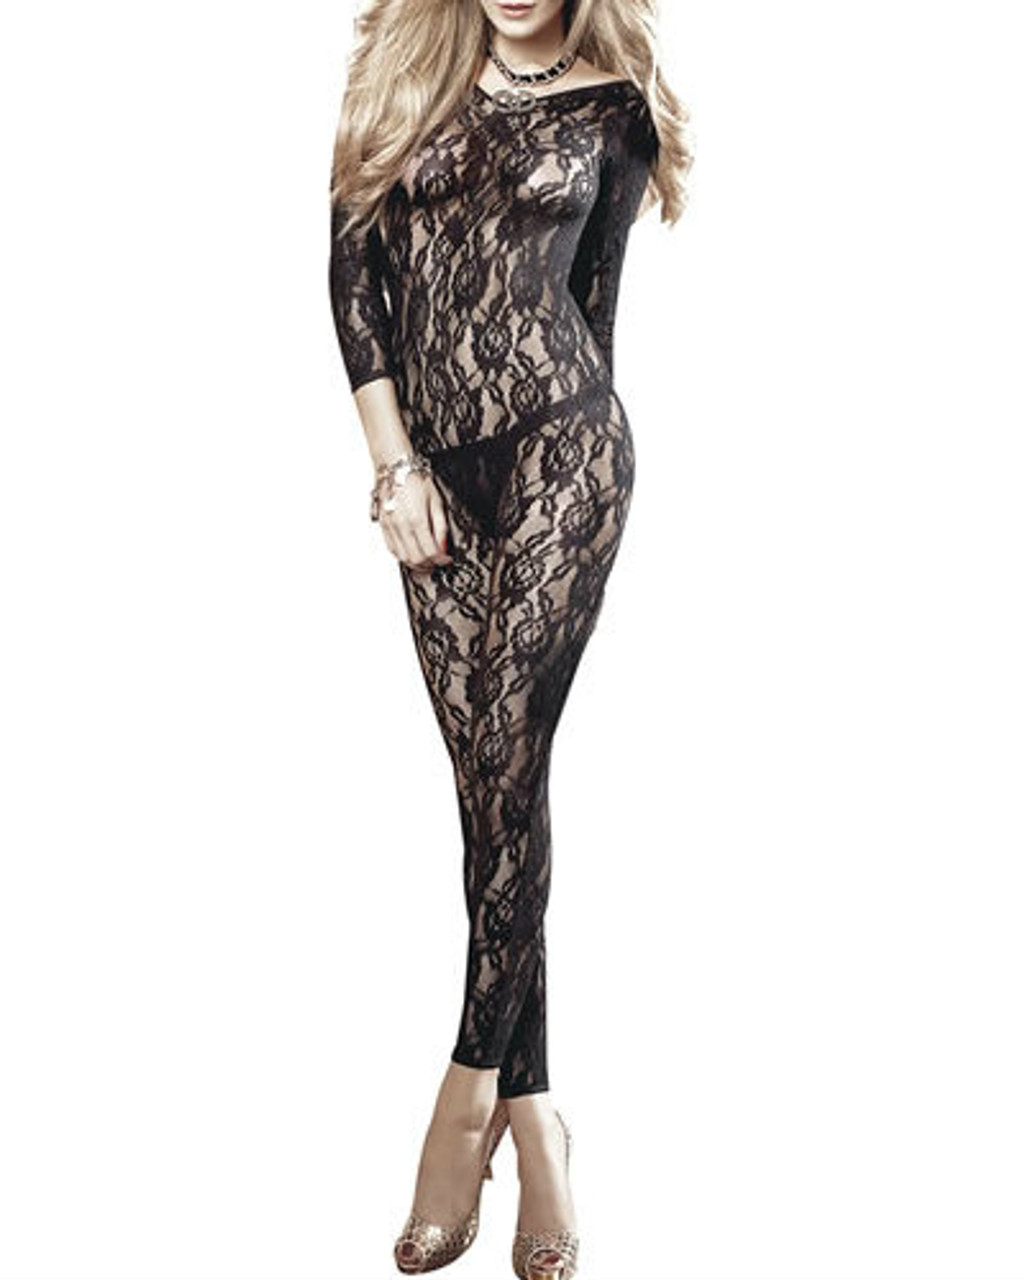 SEA OF LACE BODY STOCKING